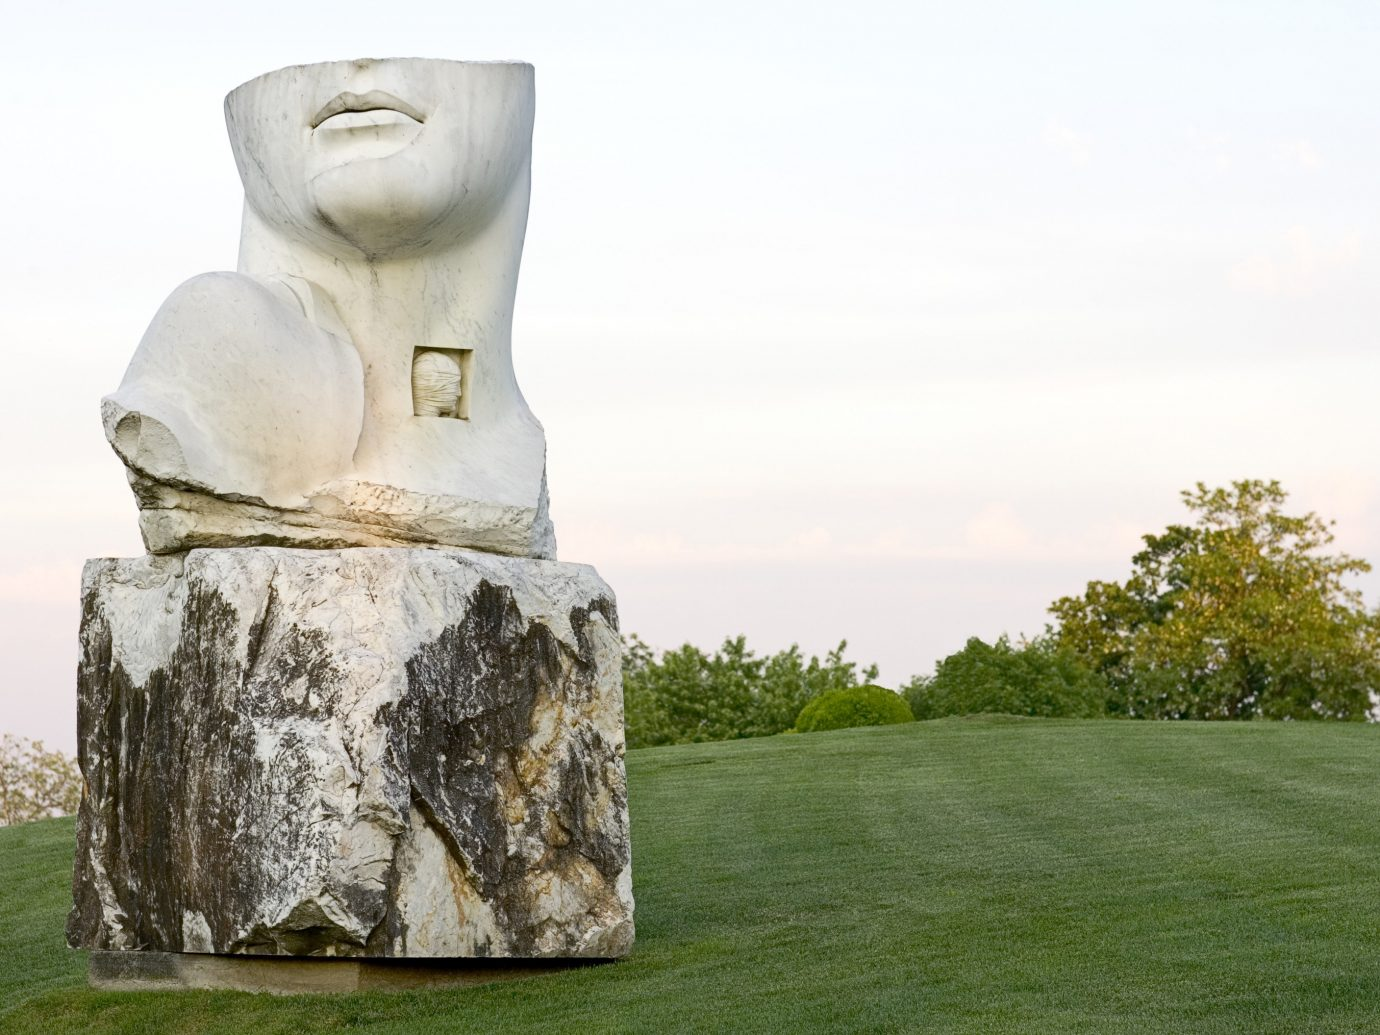 sky building grass outdoor sculpture megalith statue monument art rock ancient history monolith stone